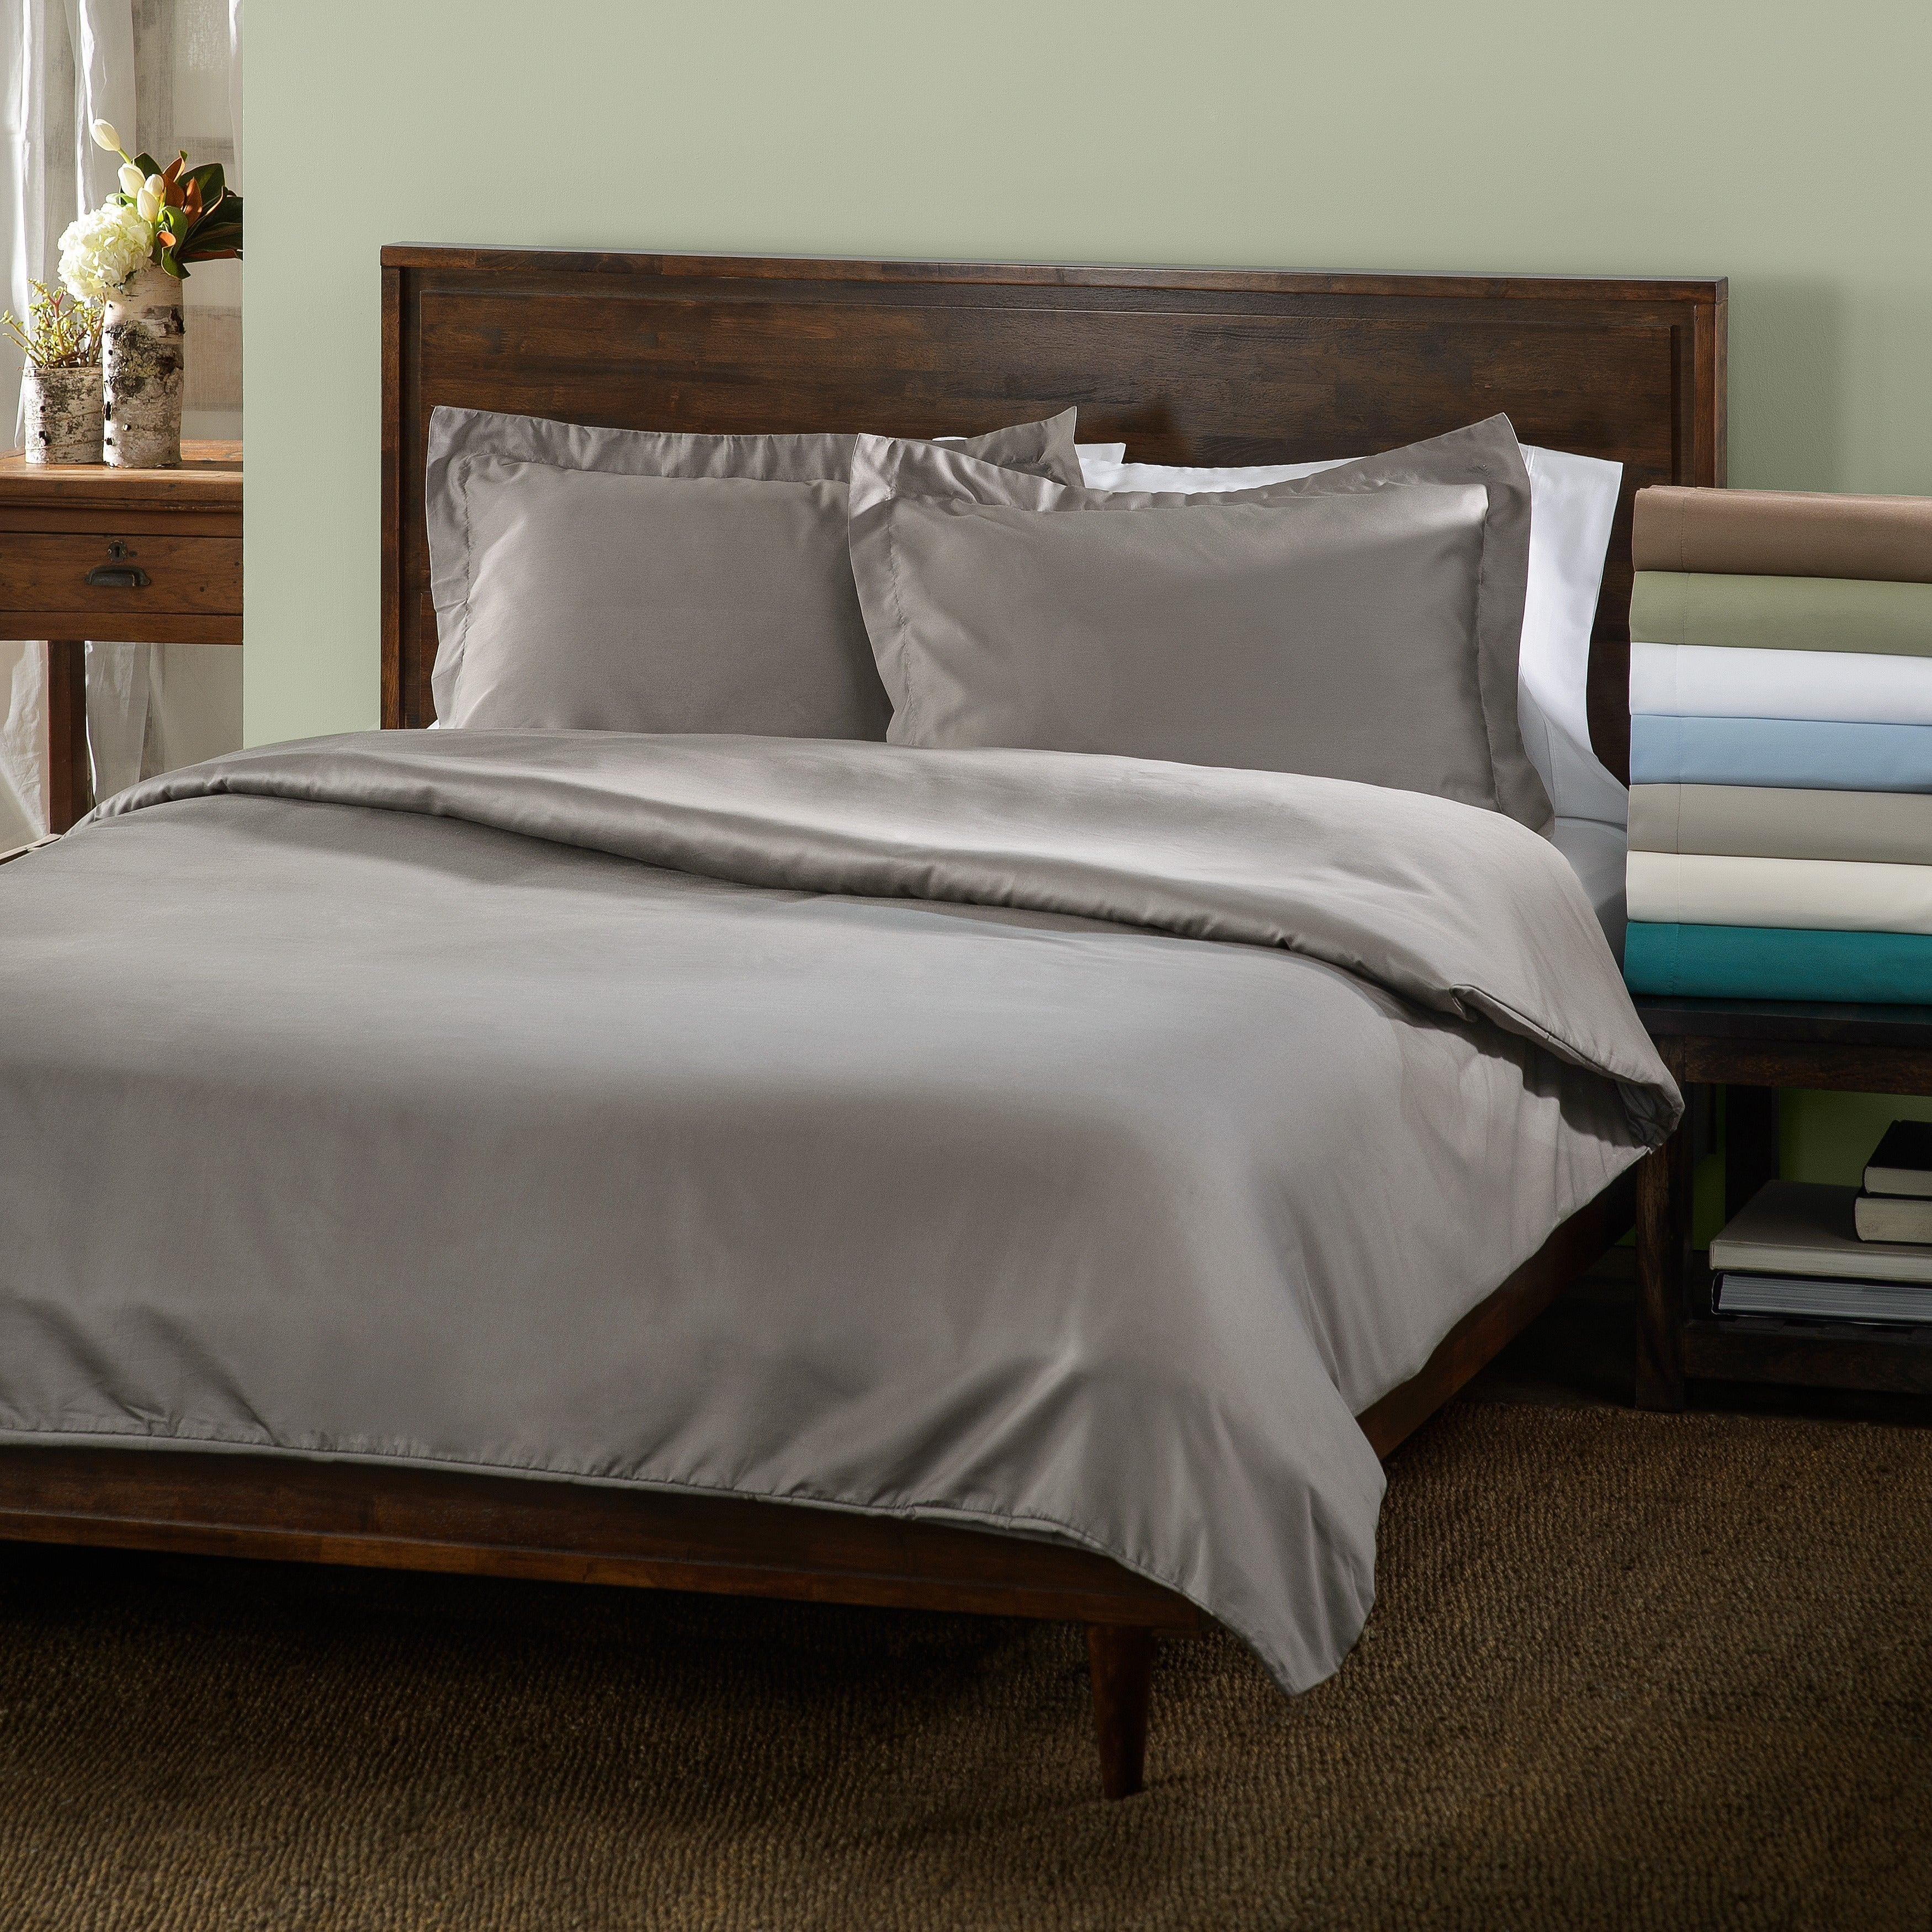 Full//Queen 88 x 88, Black Premium Hotel Quality 1-PC Duvet Cover//Quilt Cover 650-Thread-Count 100/% Egyptian Cotton Solid//Plain Pattern Choose Color